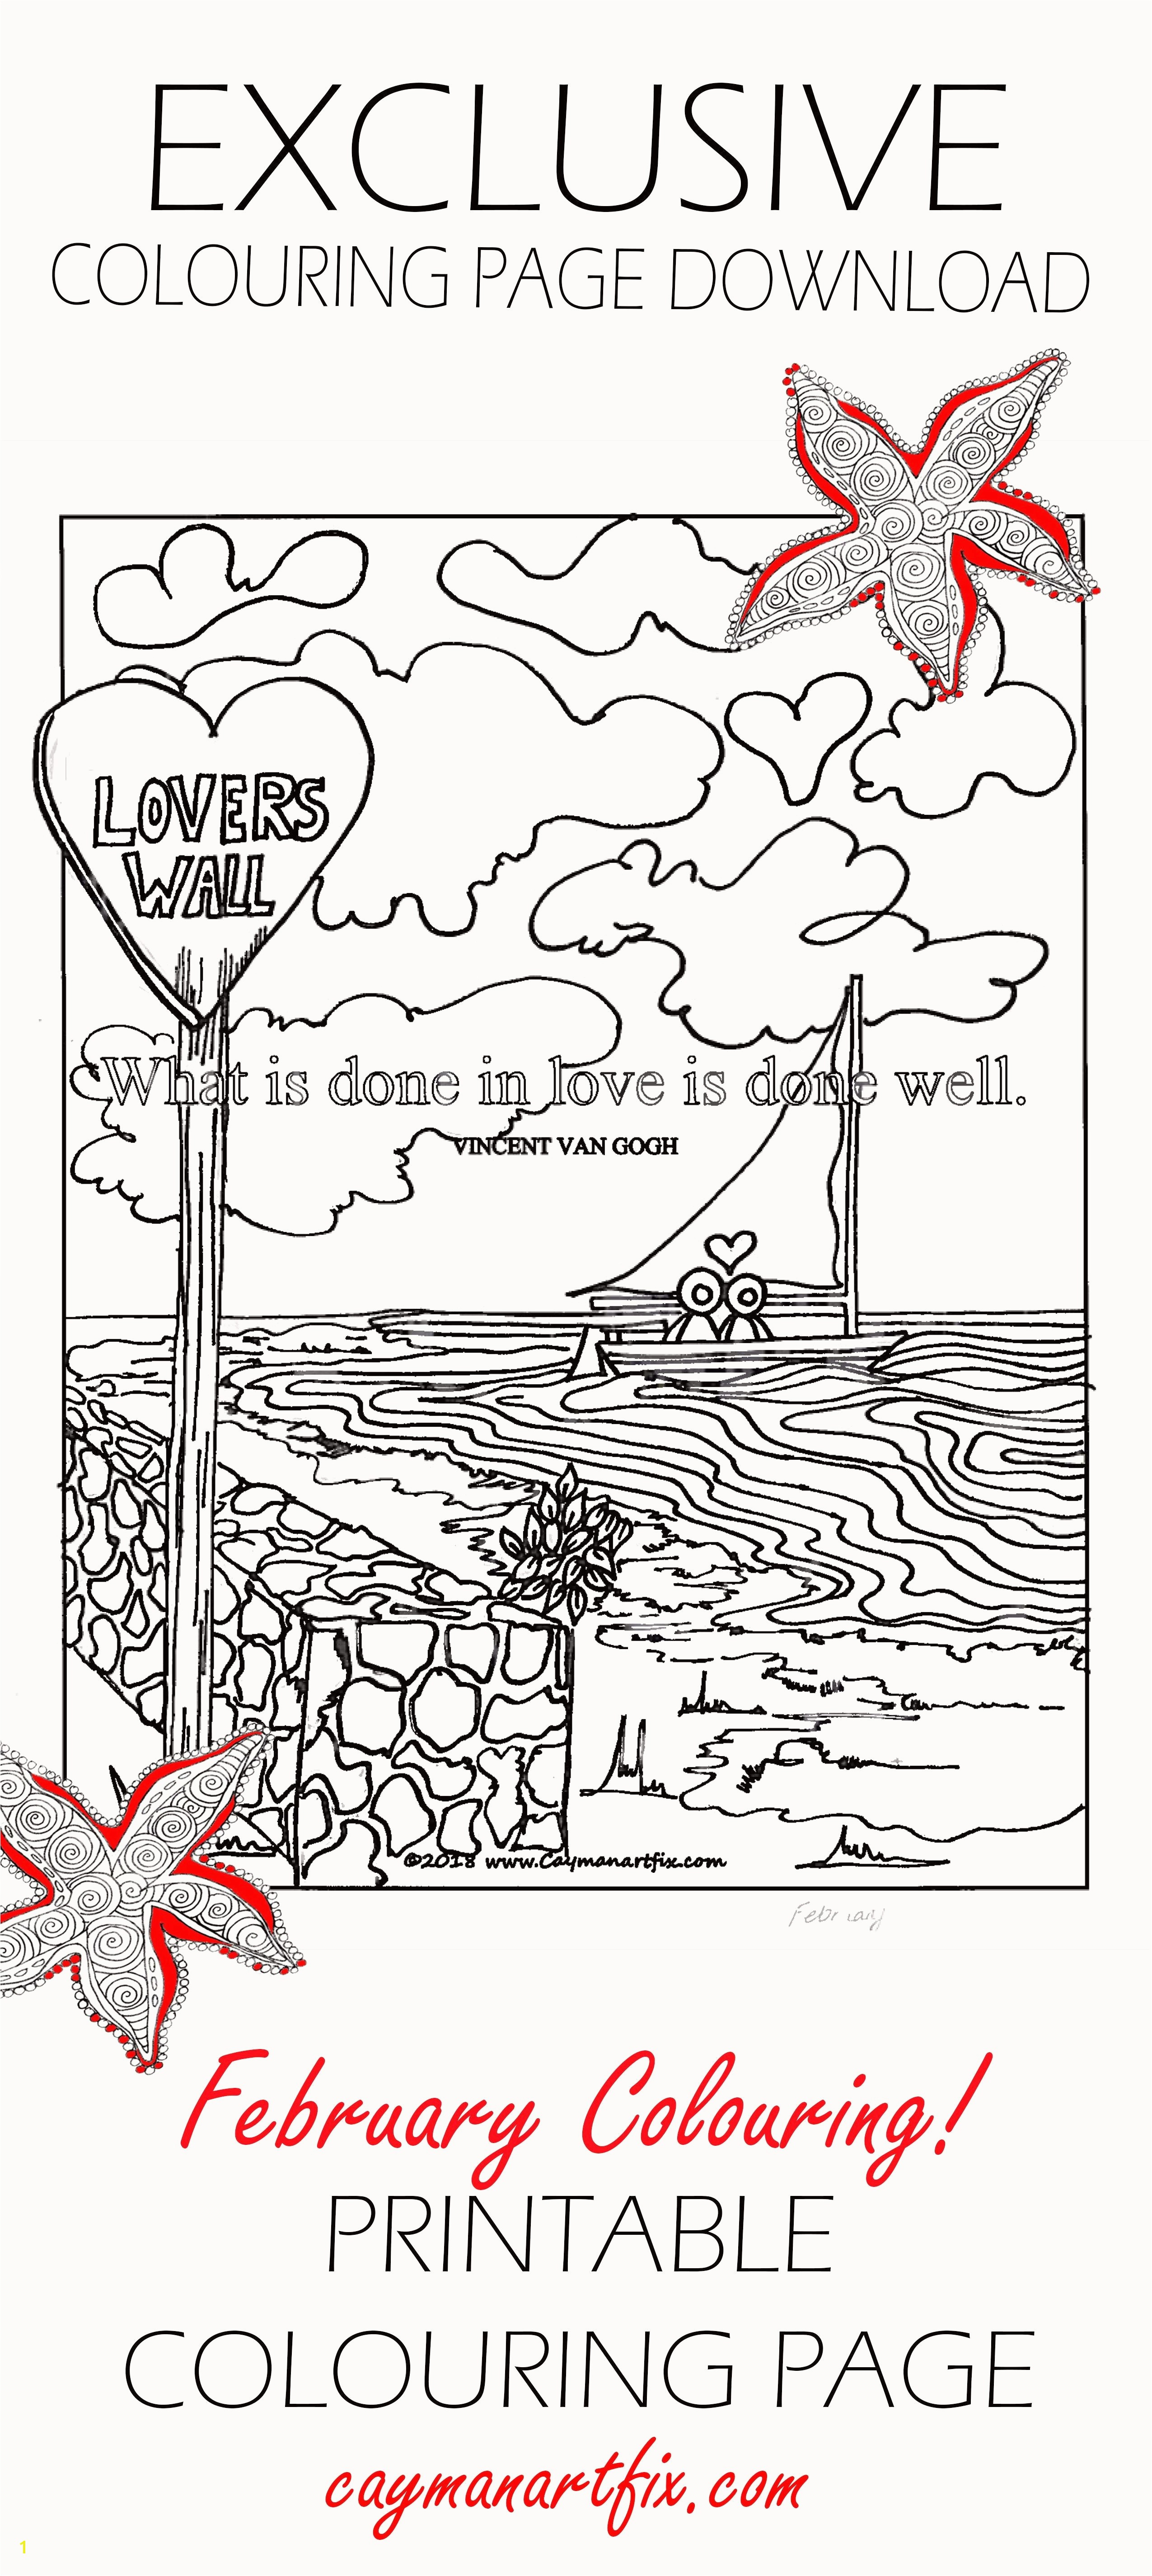 Dr Seuss Coloring Pages Awesome Coloring Pages with Quotes Unique Free Dr Seuss Coloring Pages New